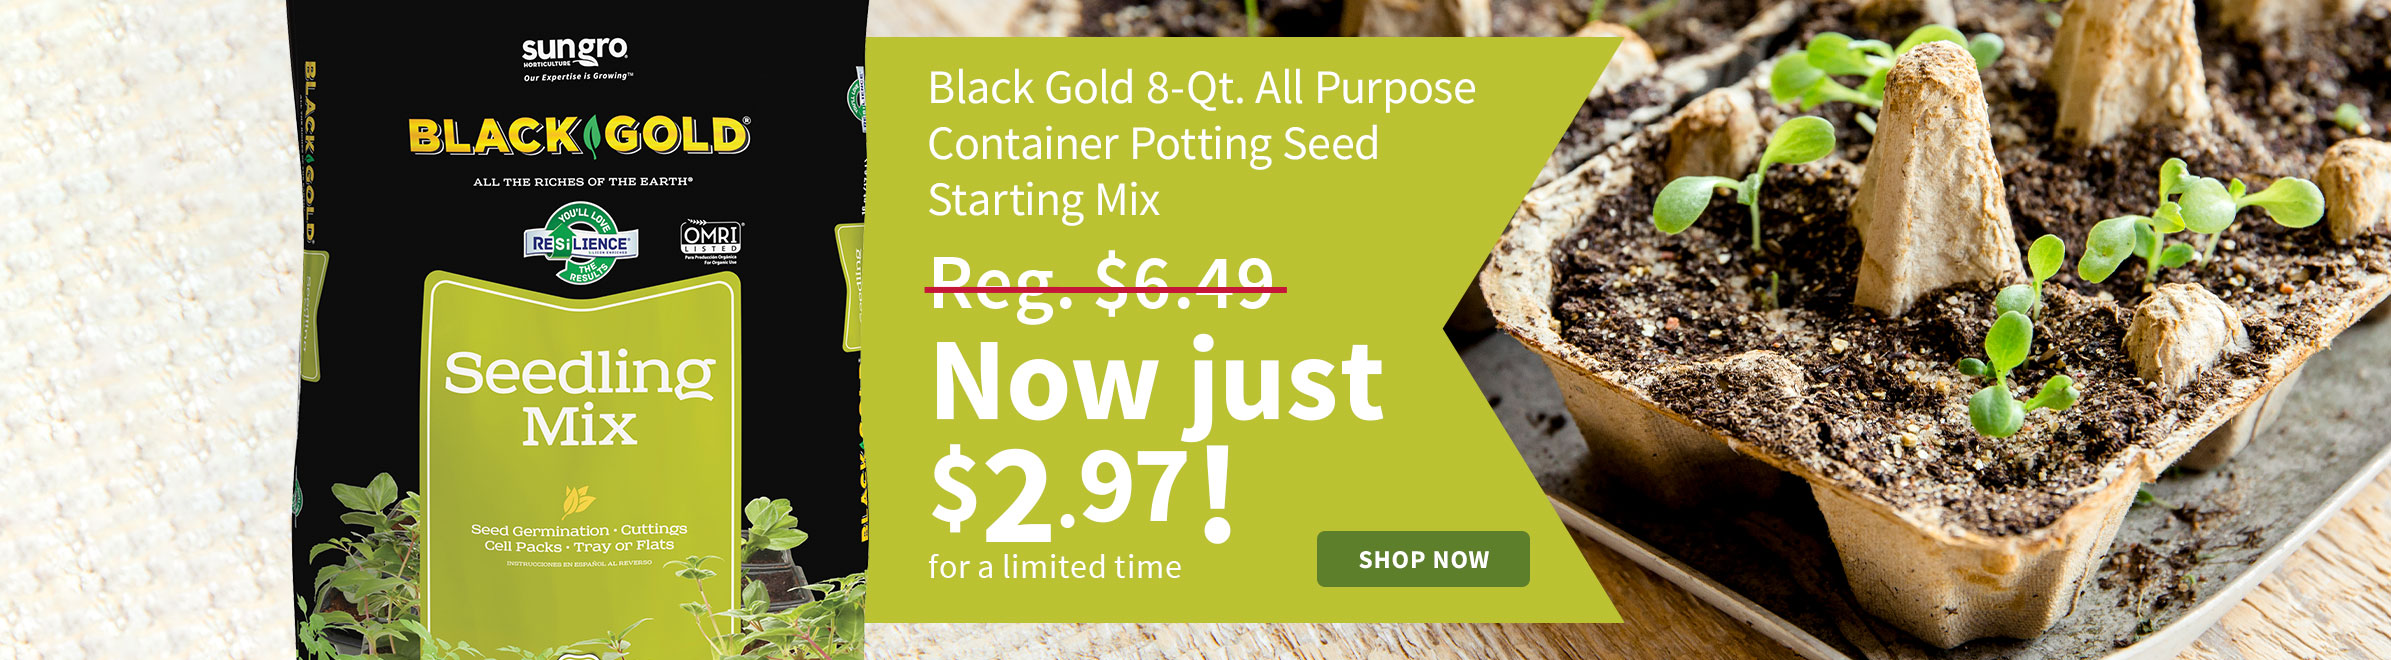 Black Gold All Purpose Container Potting Mix